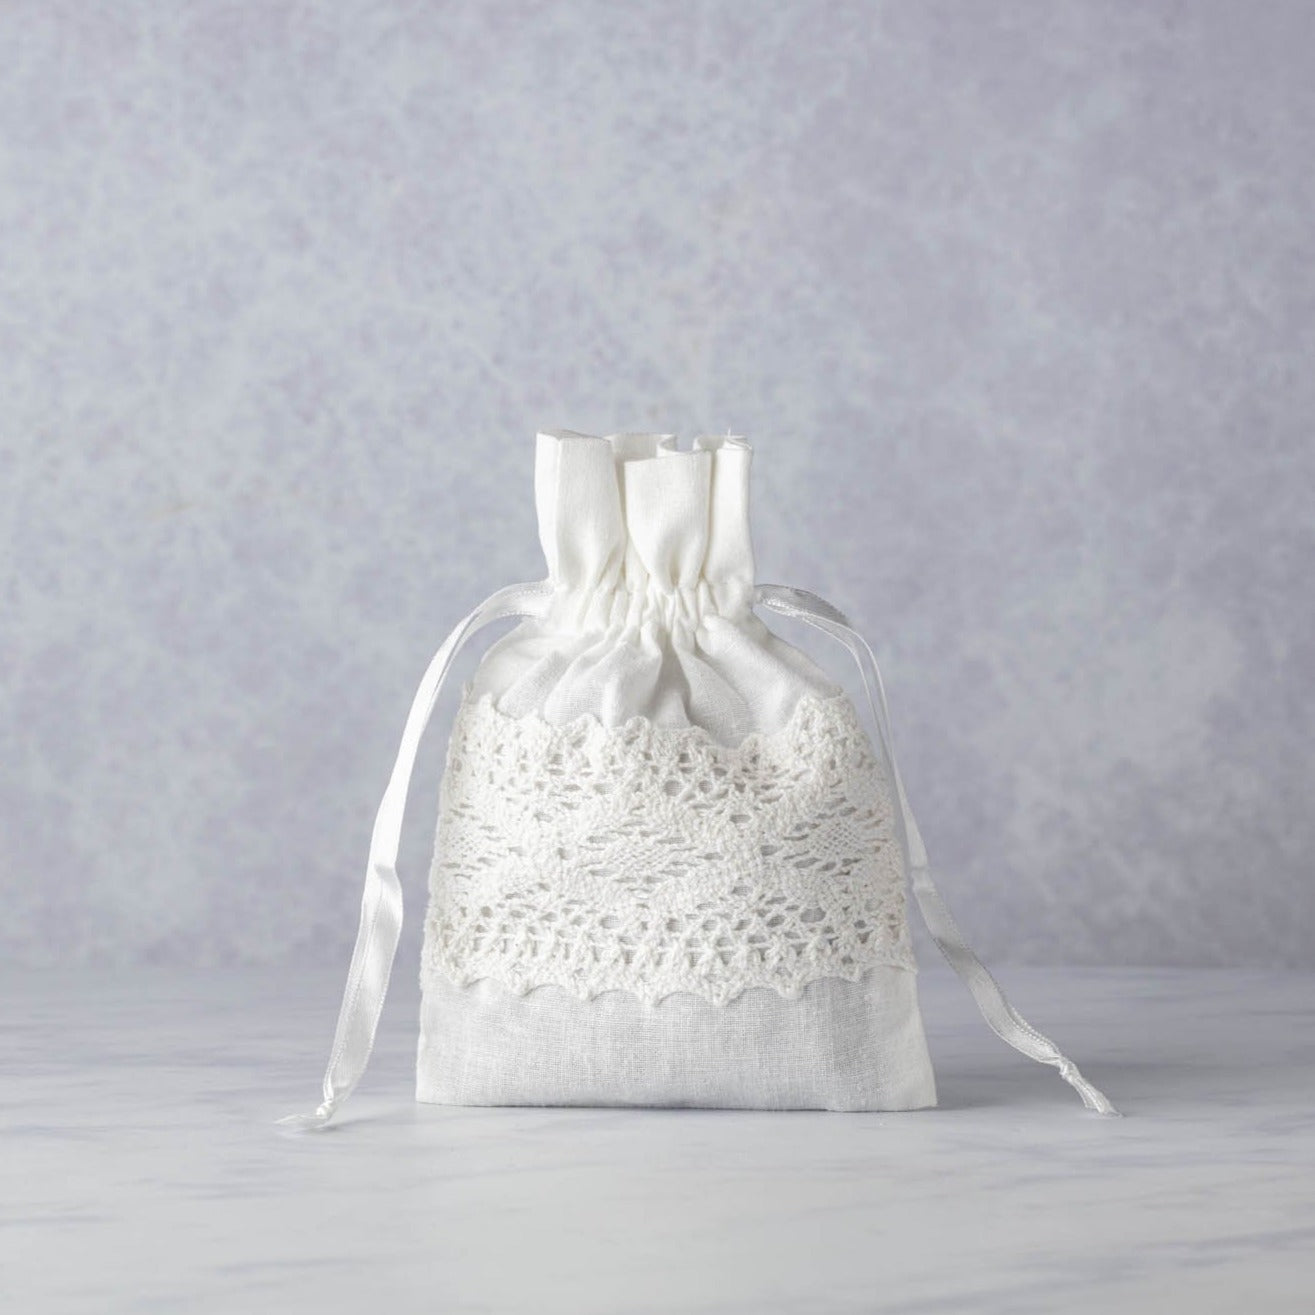 Lavandin White Embroidered Bag